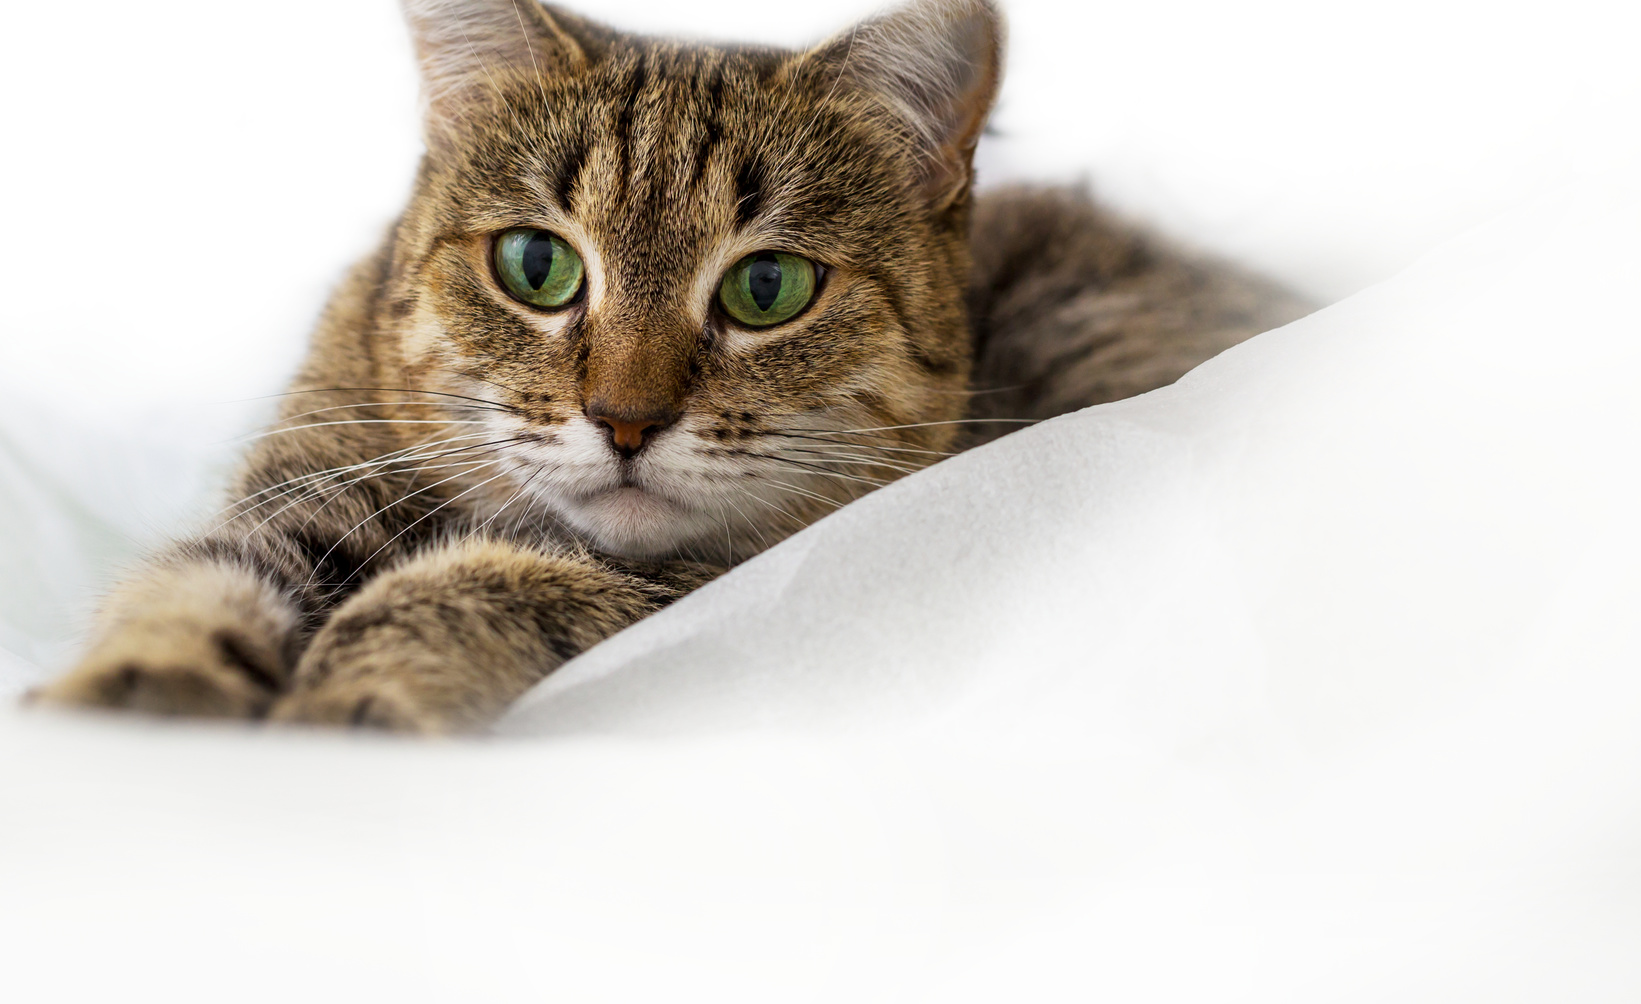 Content Marketing – The Nine Lives of a Single Topic